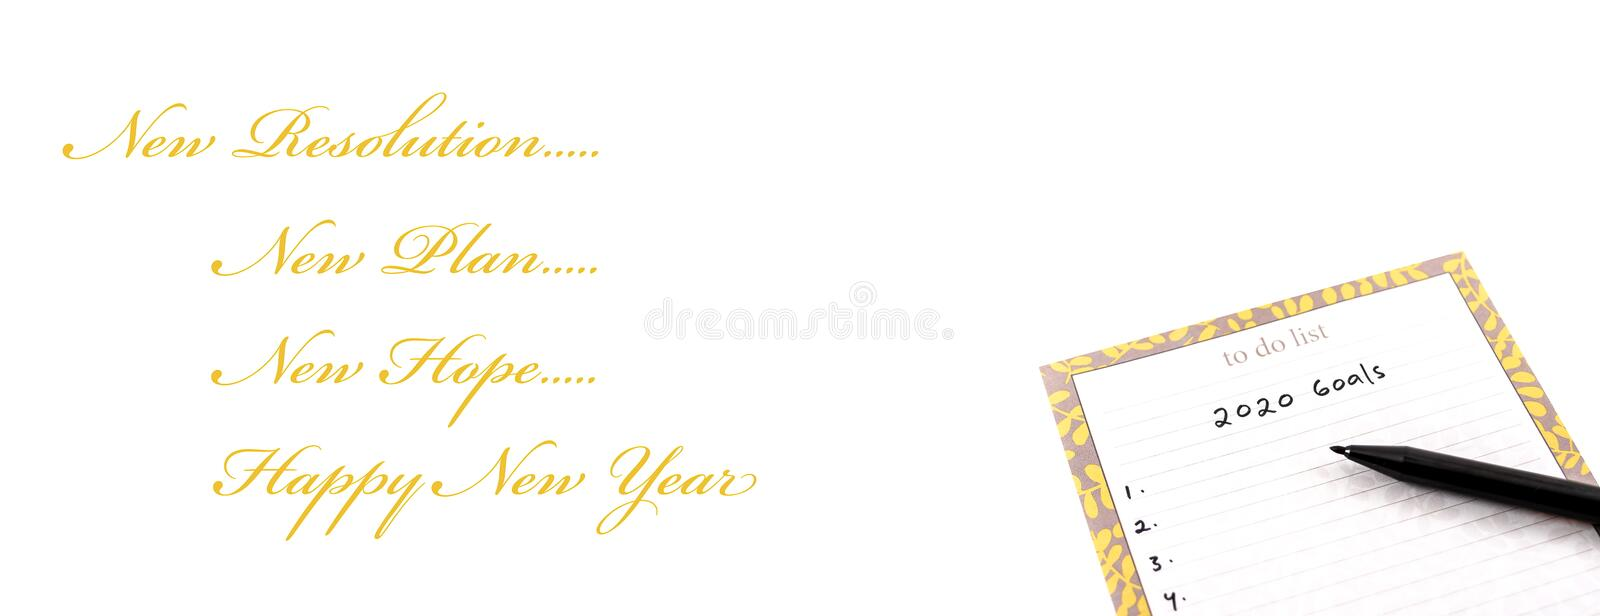 Happy new year greeting card or template with yellow gold text and 2020 goal on white background stock photography